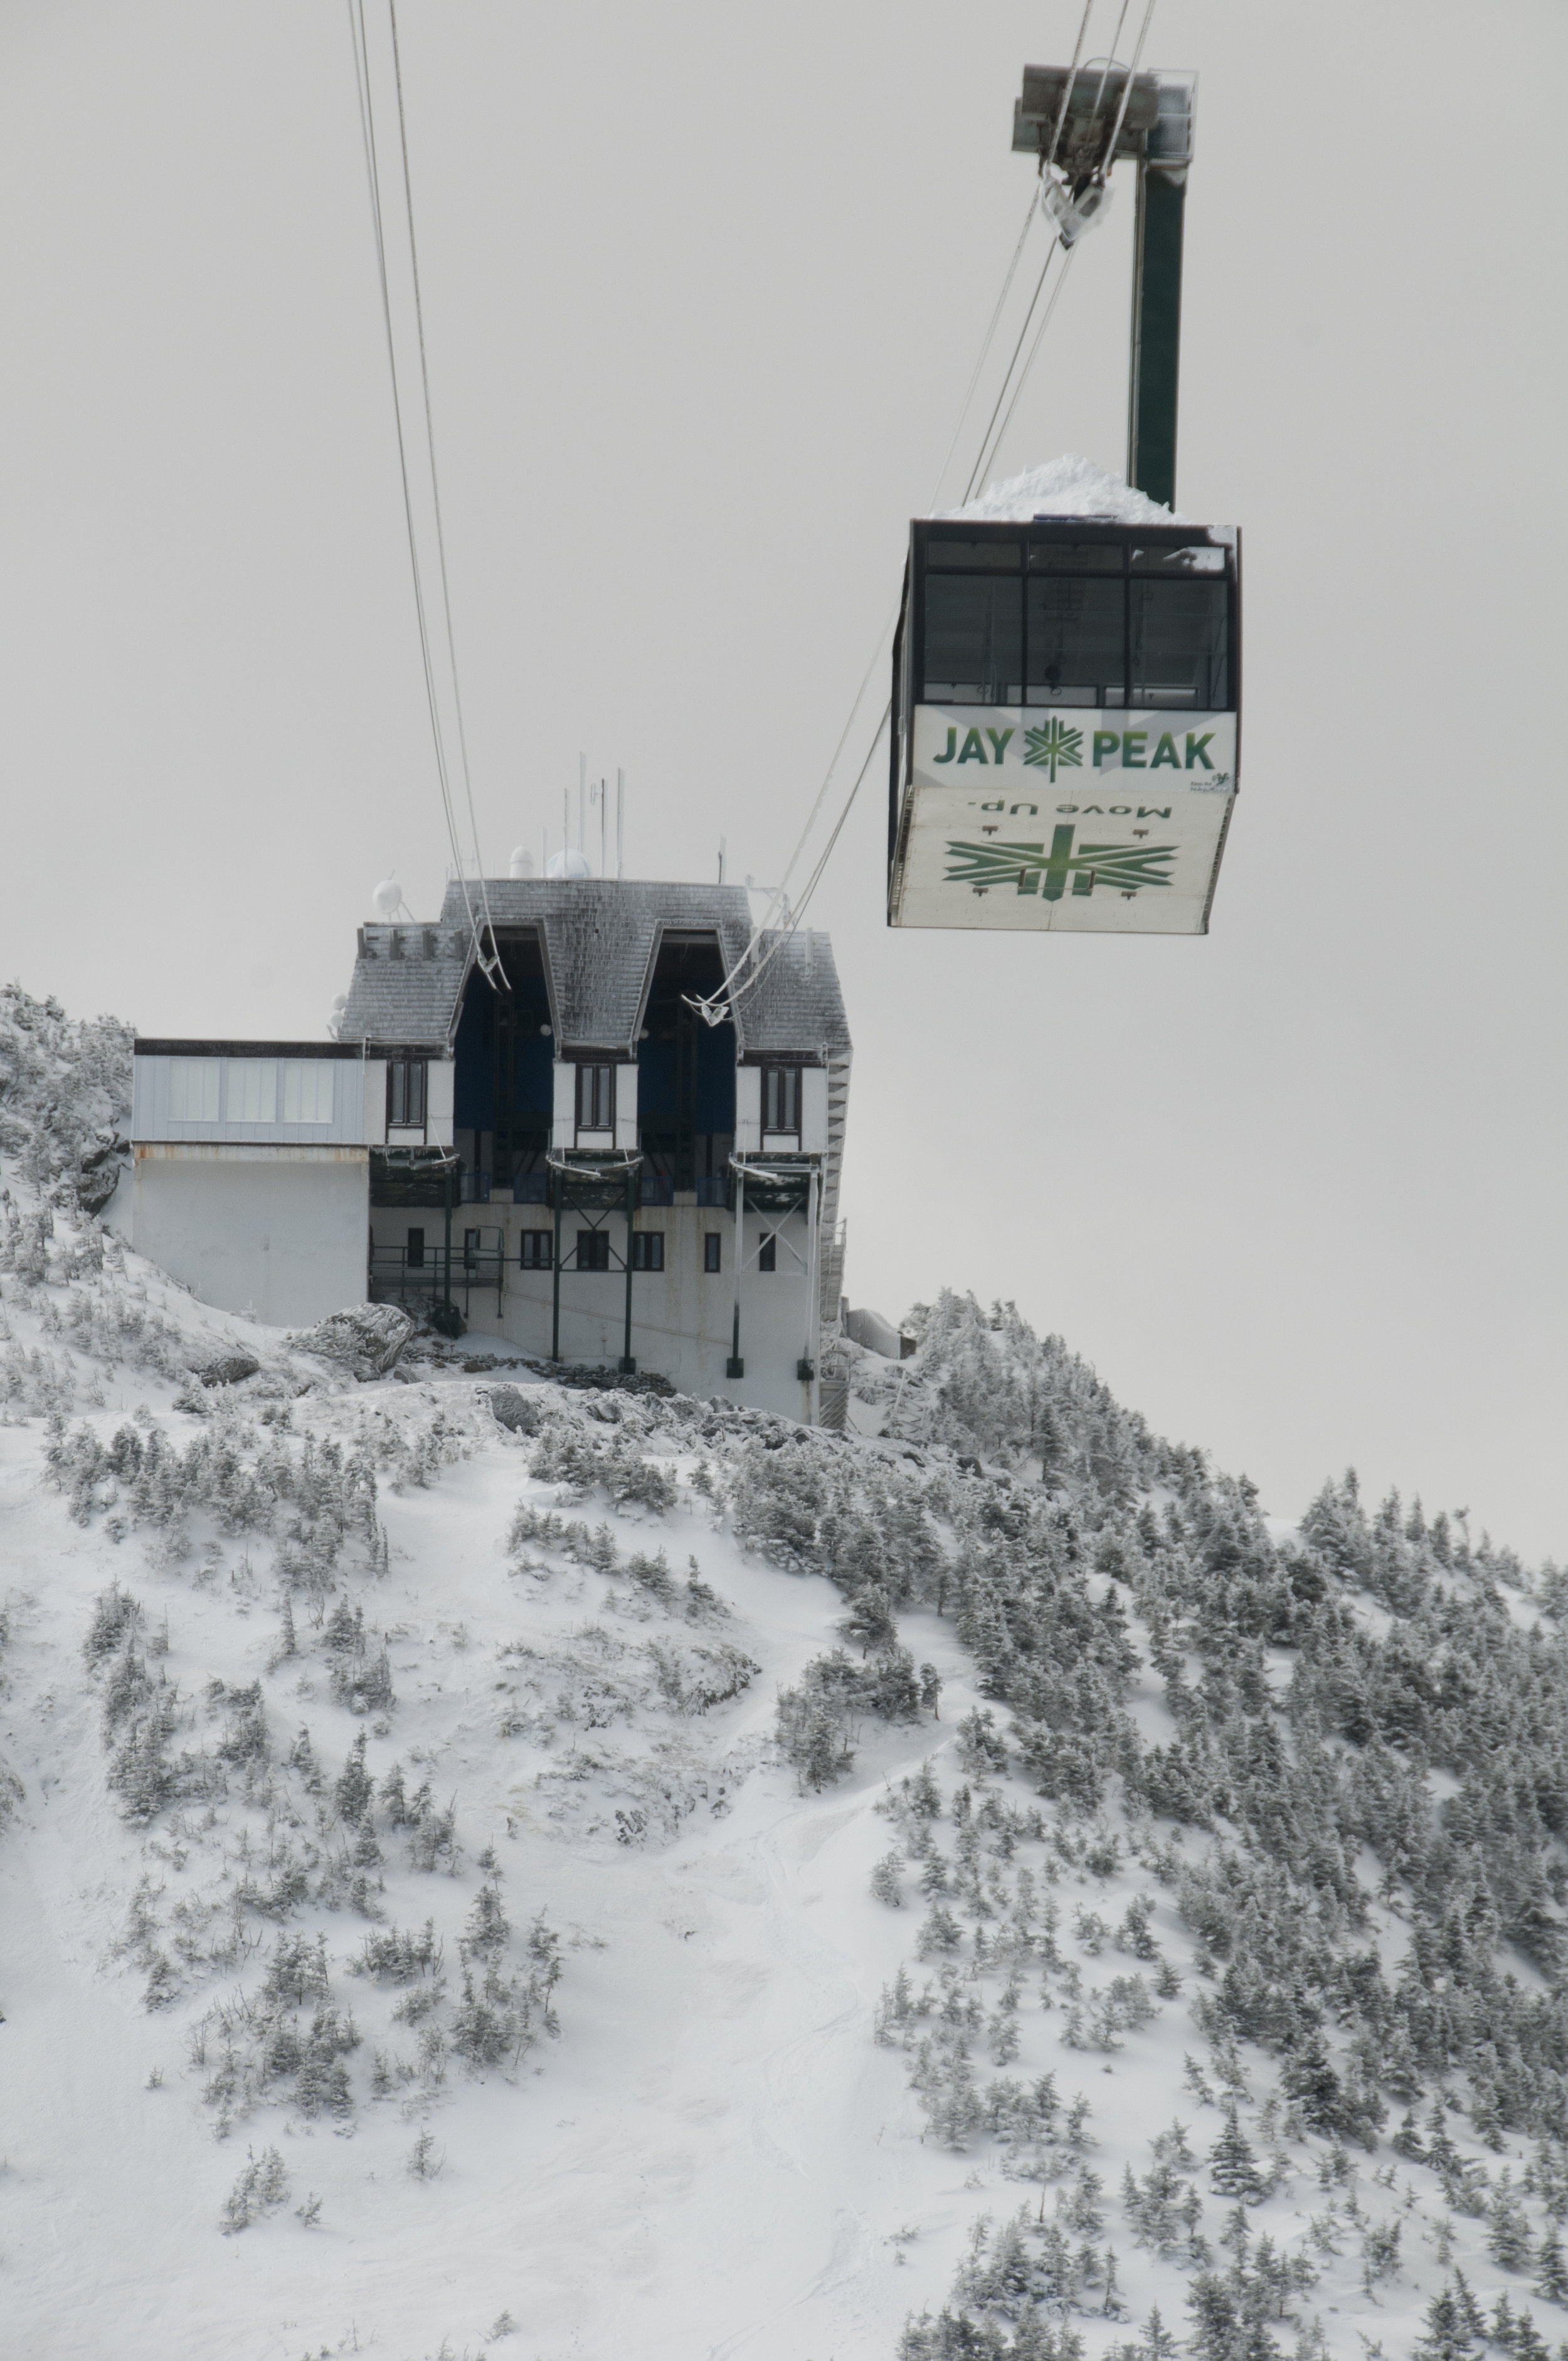 The Jay Peak tram with the Face Chutes underneath.